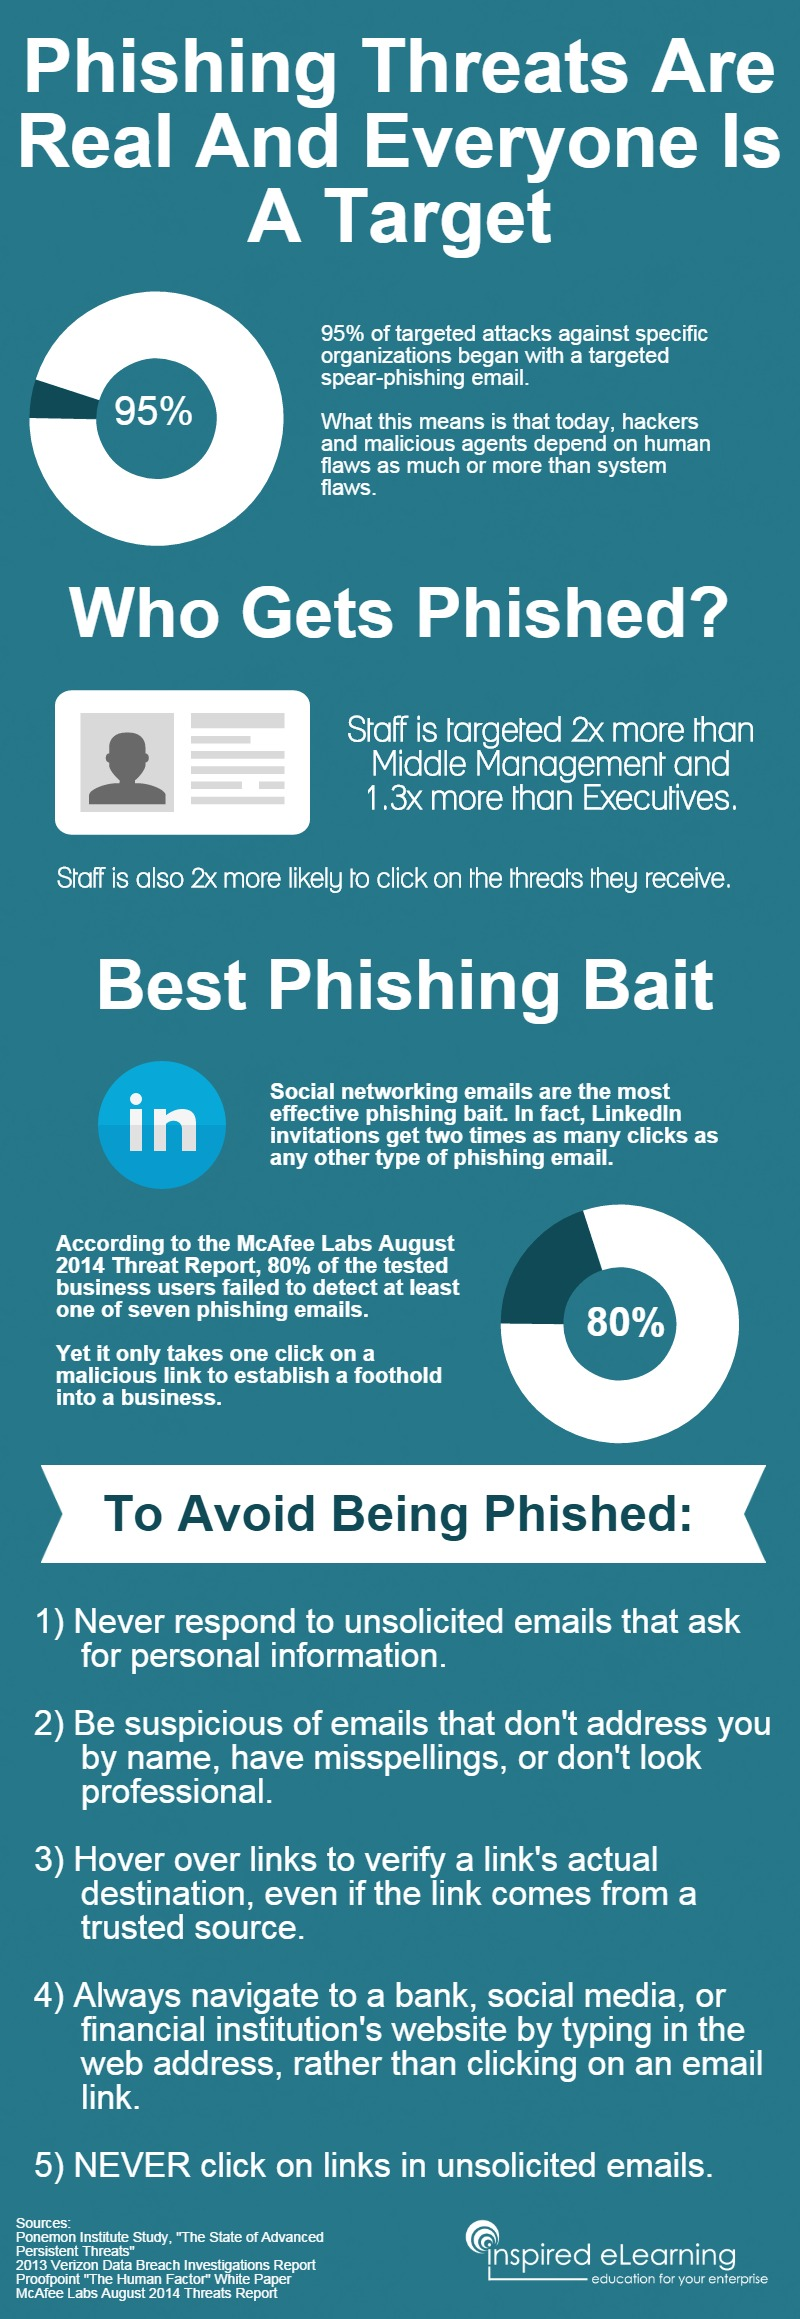 Ways to avoid being phished [infographic]